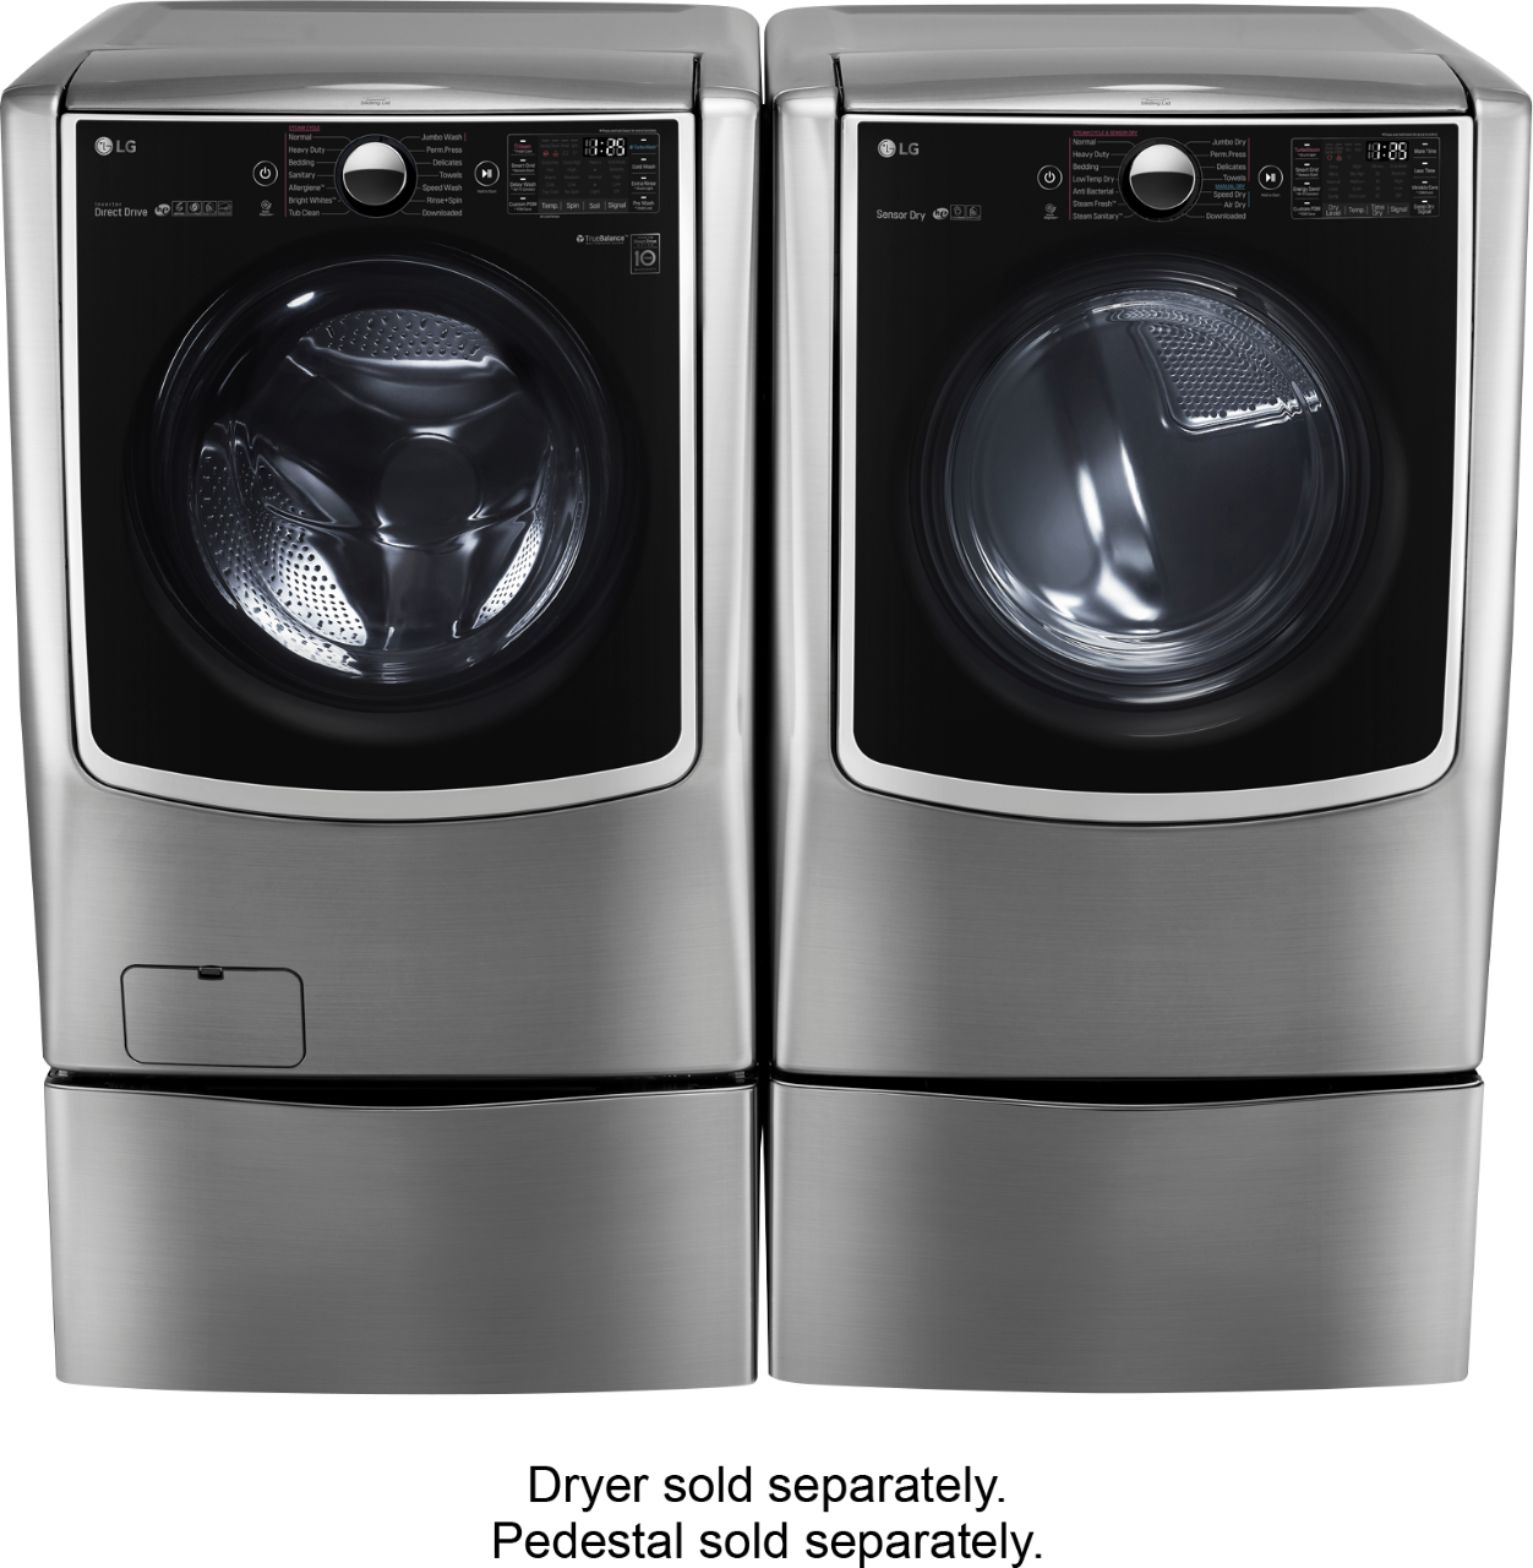 Washer And Dryer Calgary Lg 5 2 Cu Ft 14 Cycle Front Loading Smart Wi Fi Washer With Turbowash And Steam Graphite Steel